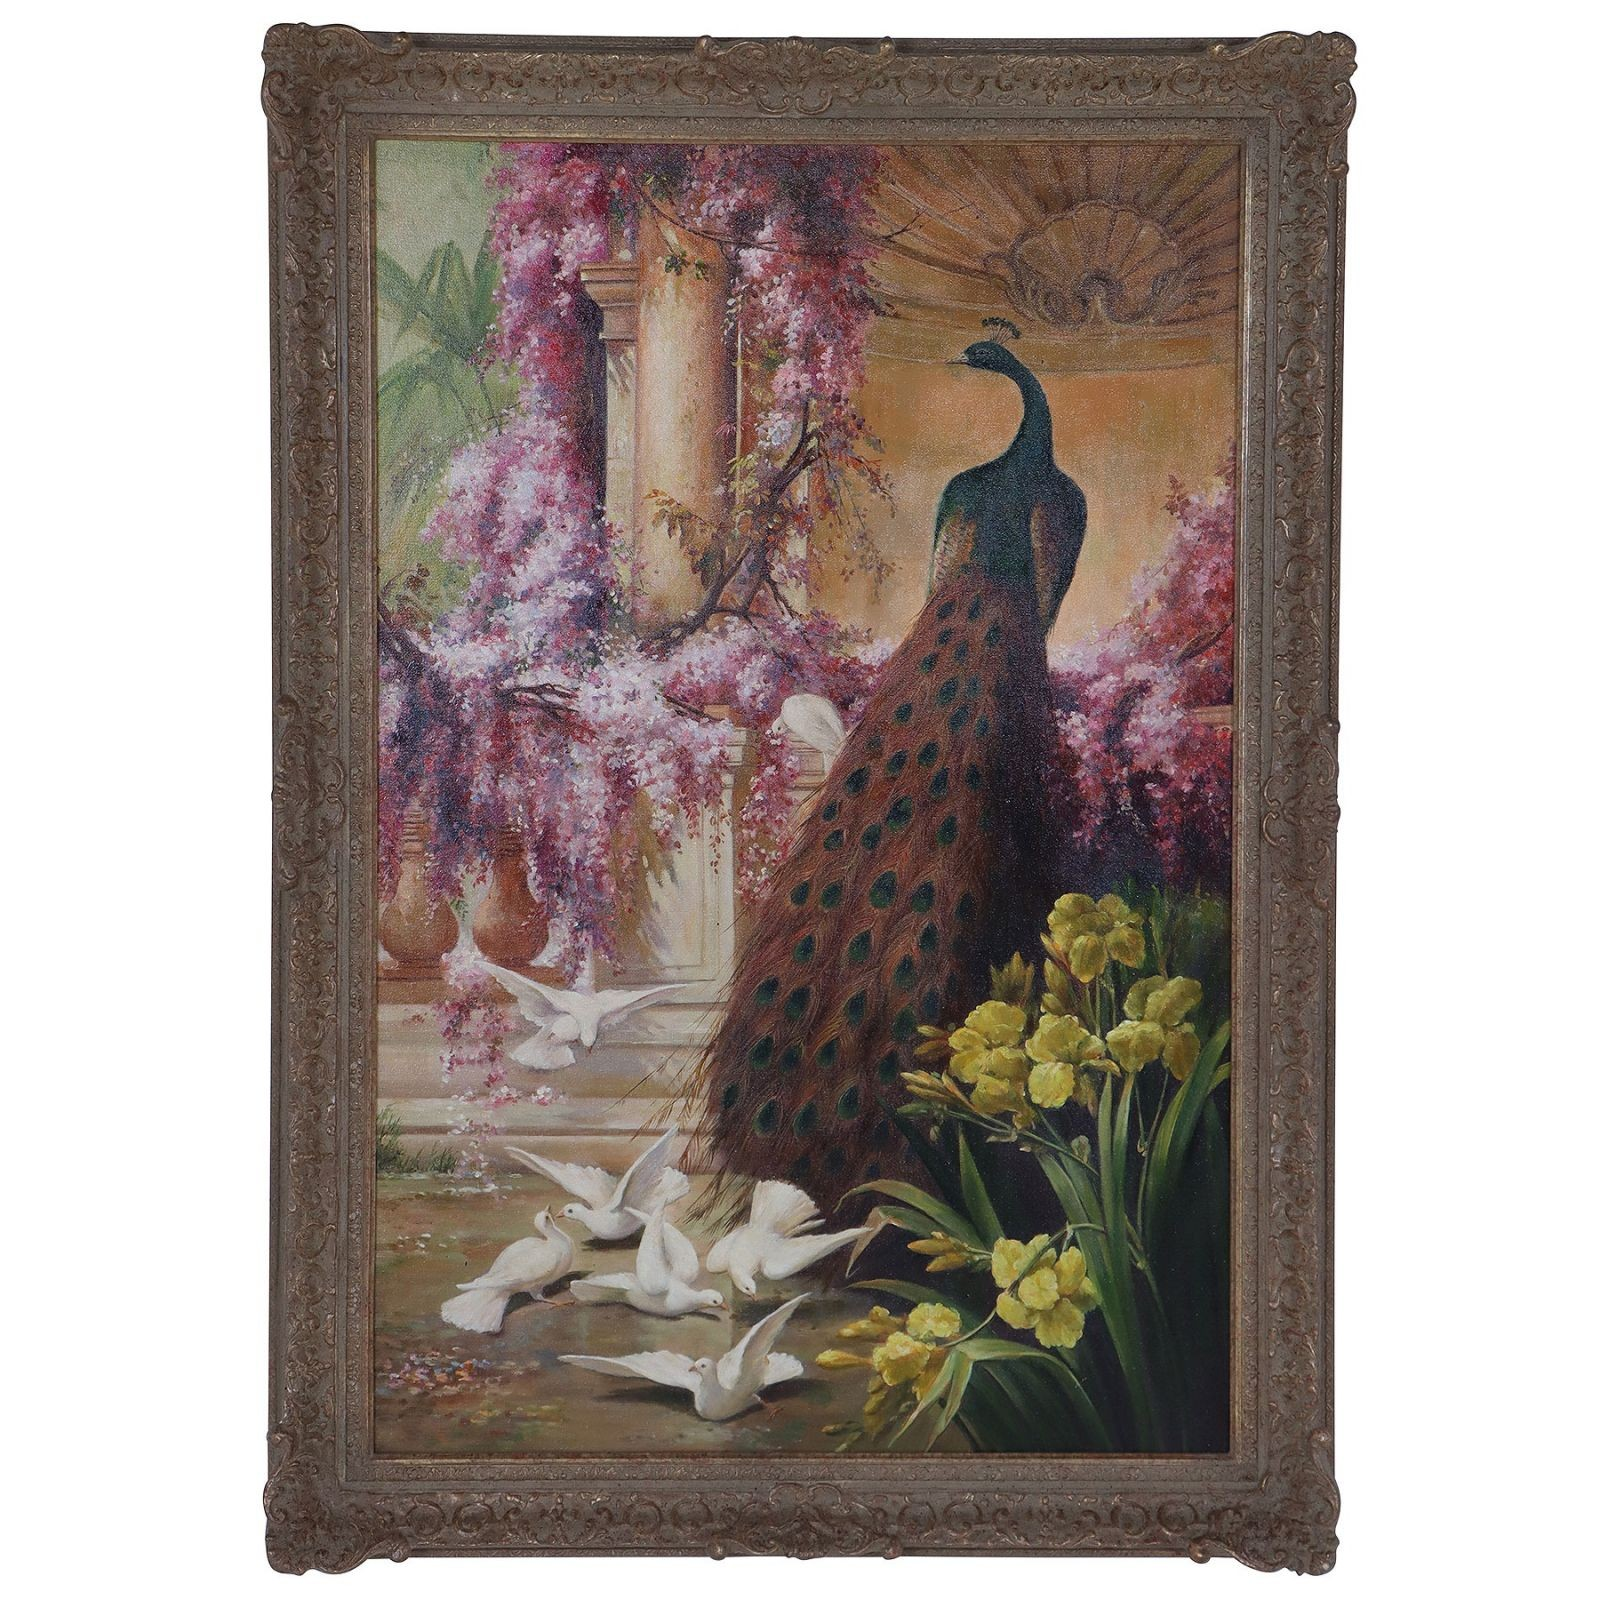 A Peacock and Doves in a Garden oil painting